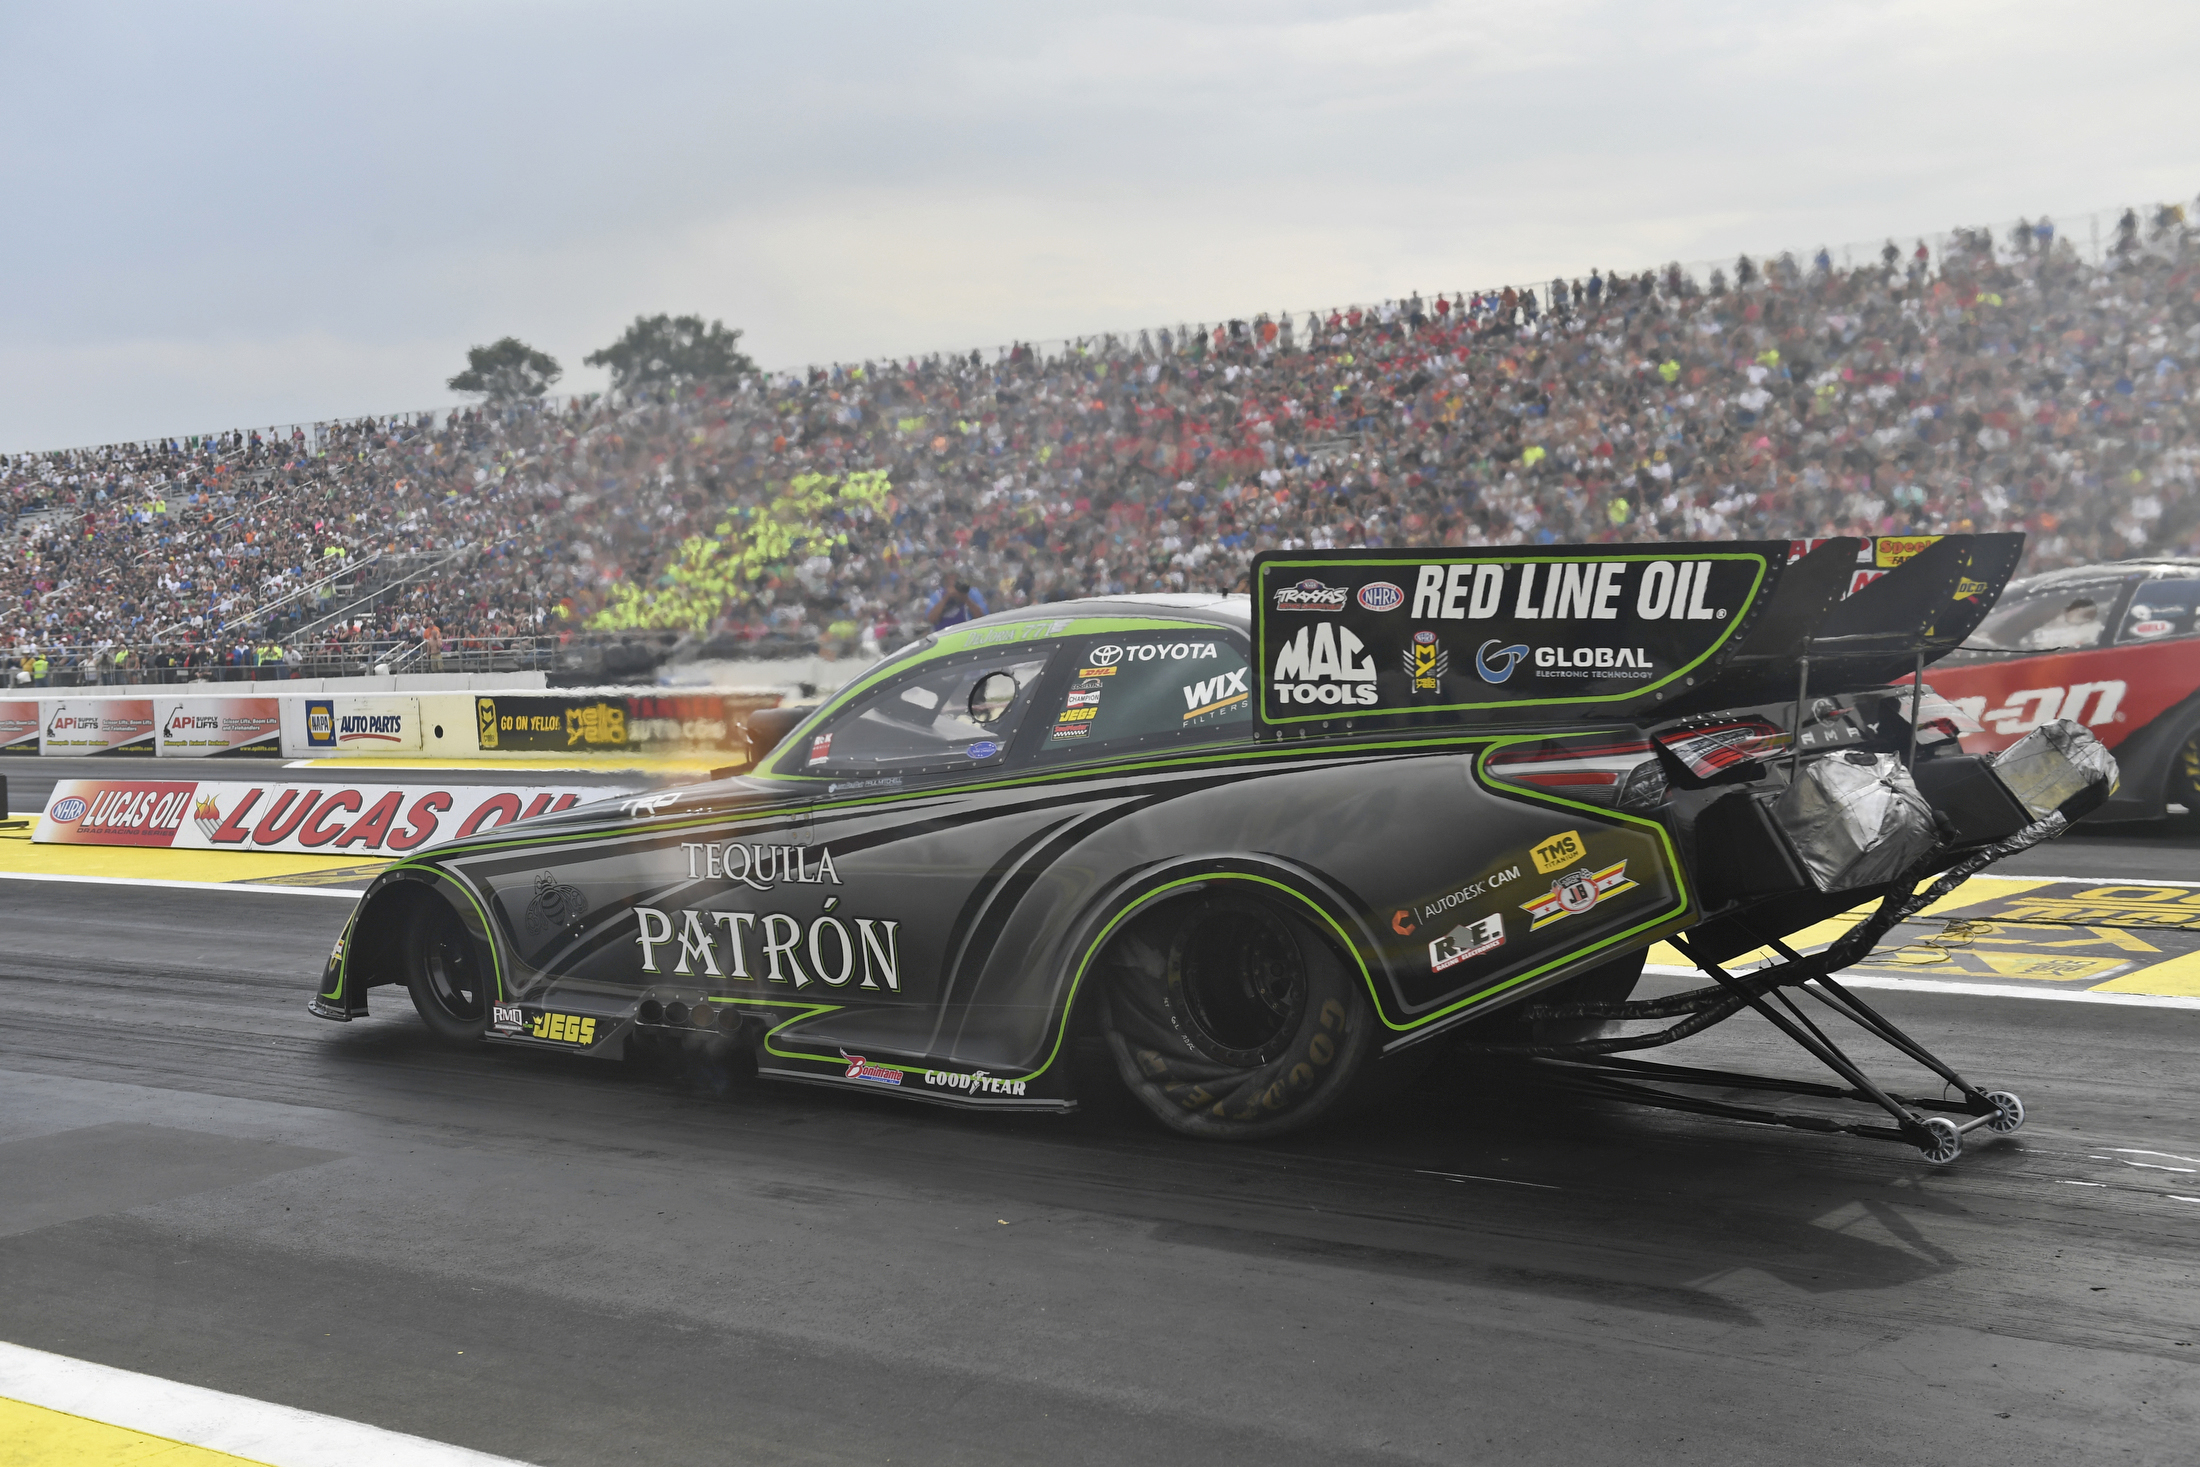 Tequila Patron Funny Car pilot Alexis DeJoria racing on Sunday at the Lucas Oil NHRA Nationals